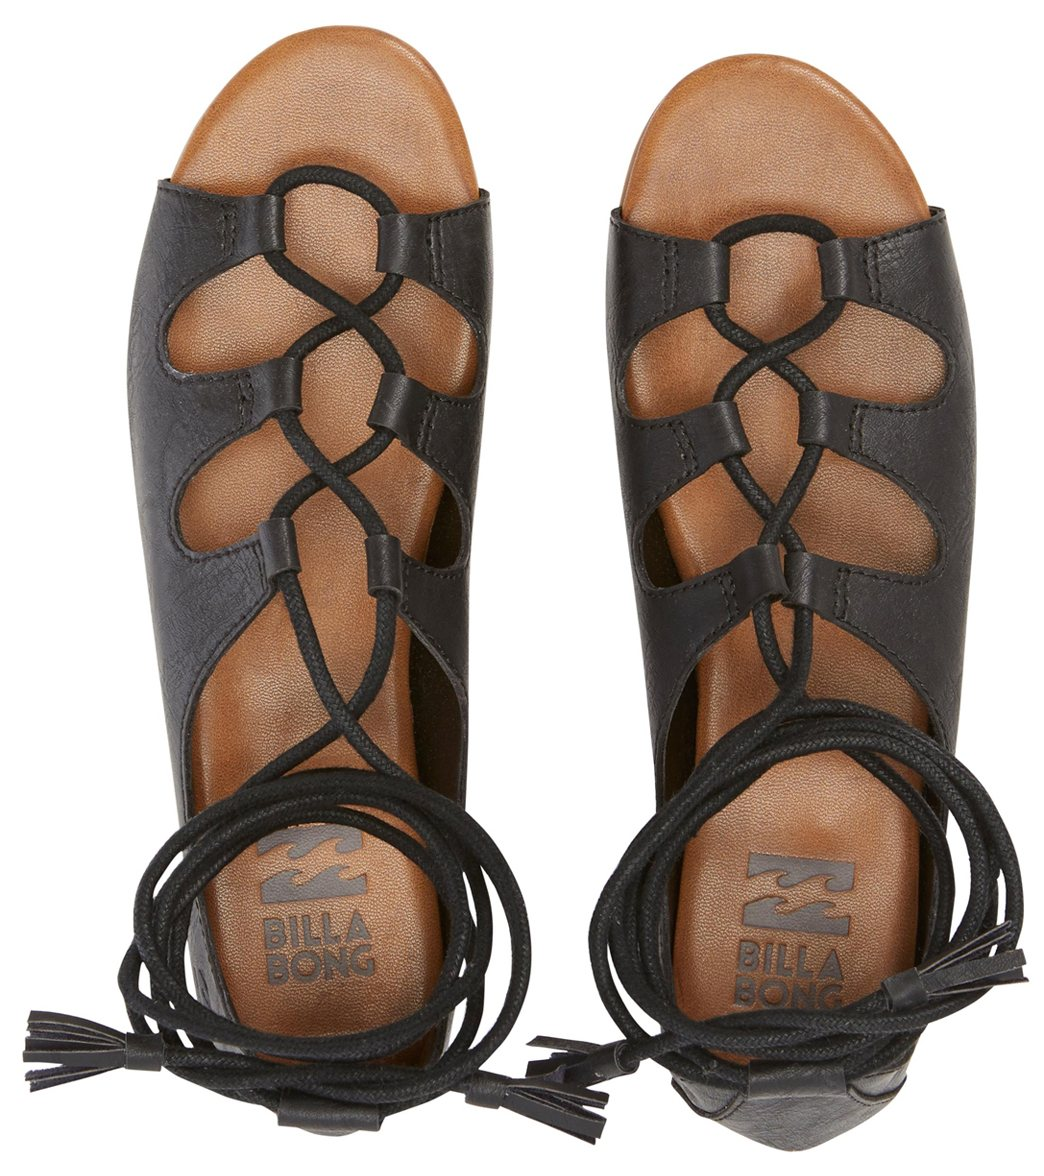 fc09af15a64 Billabong Women s Break Free Sandal at SwimOutlet.com - Free Shipping